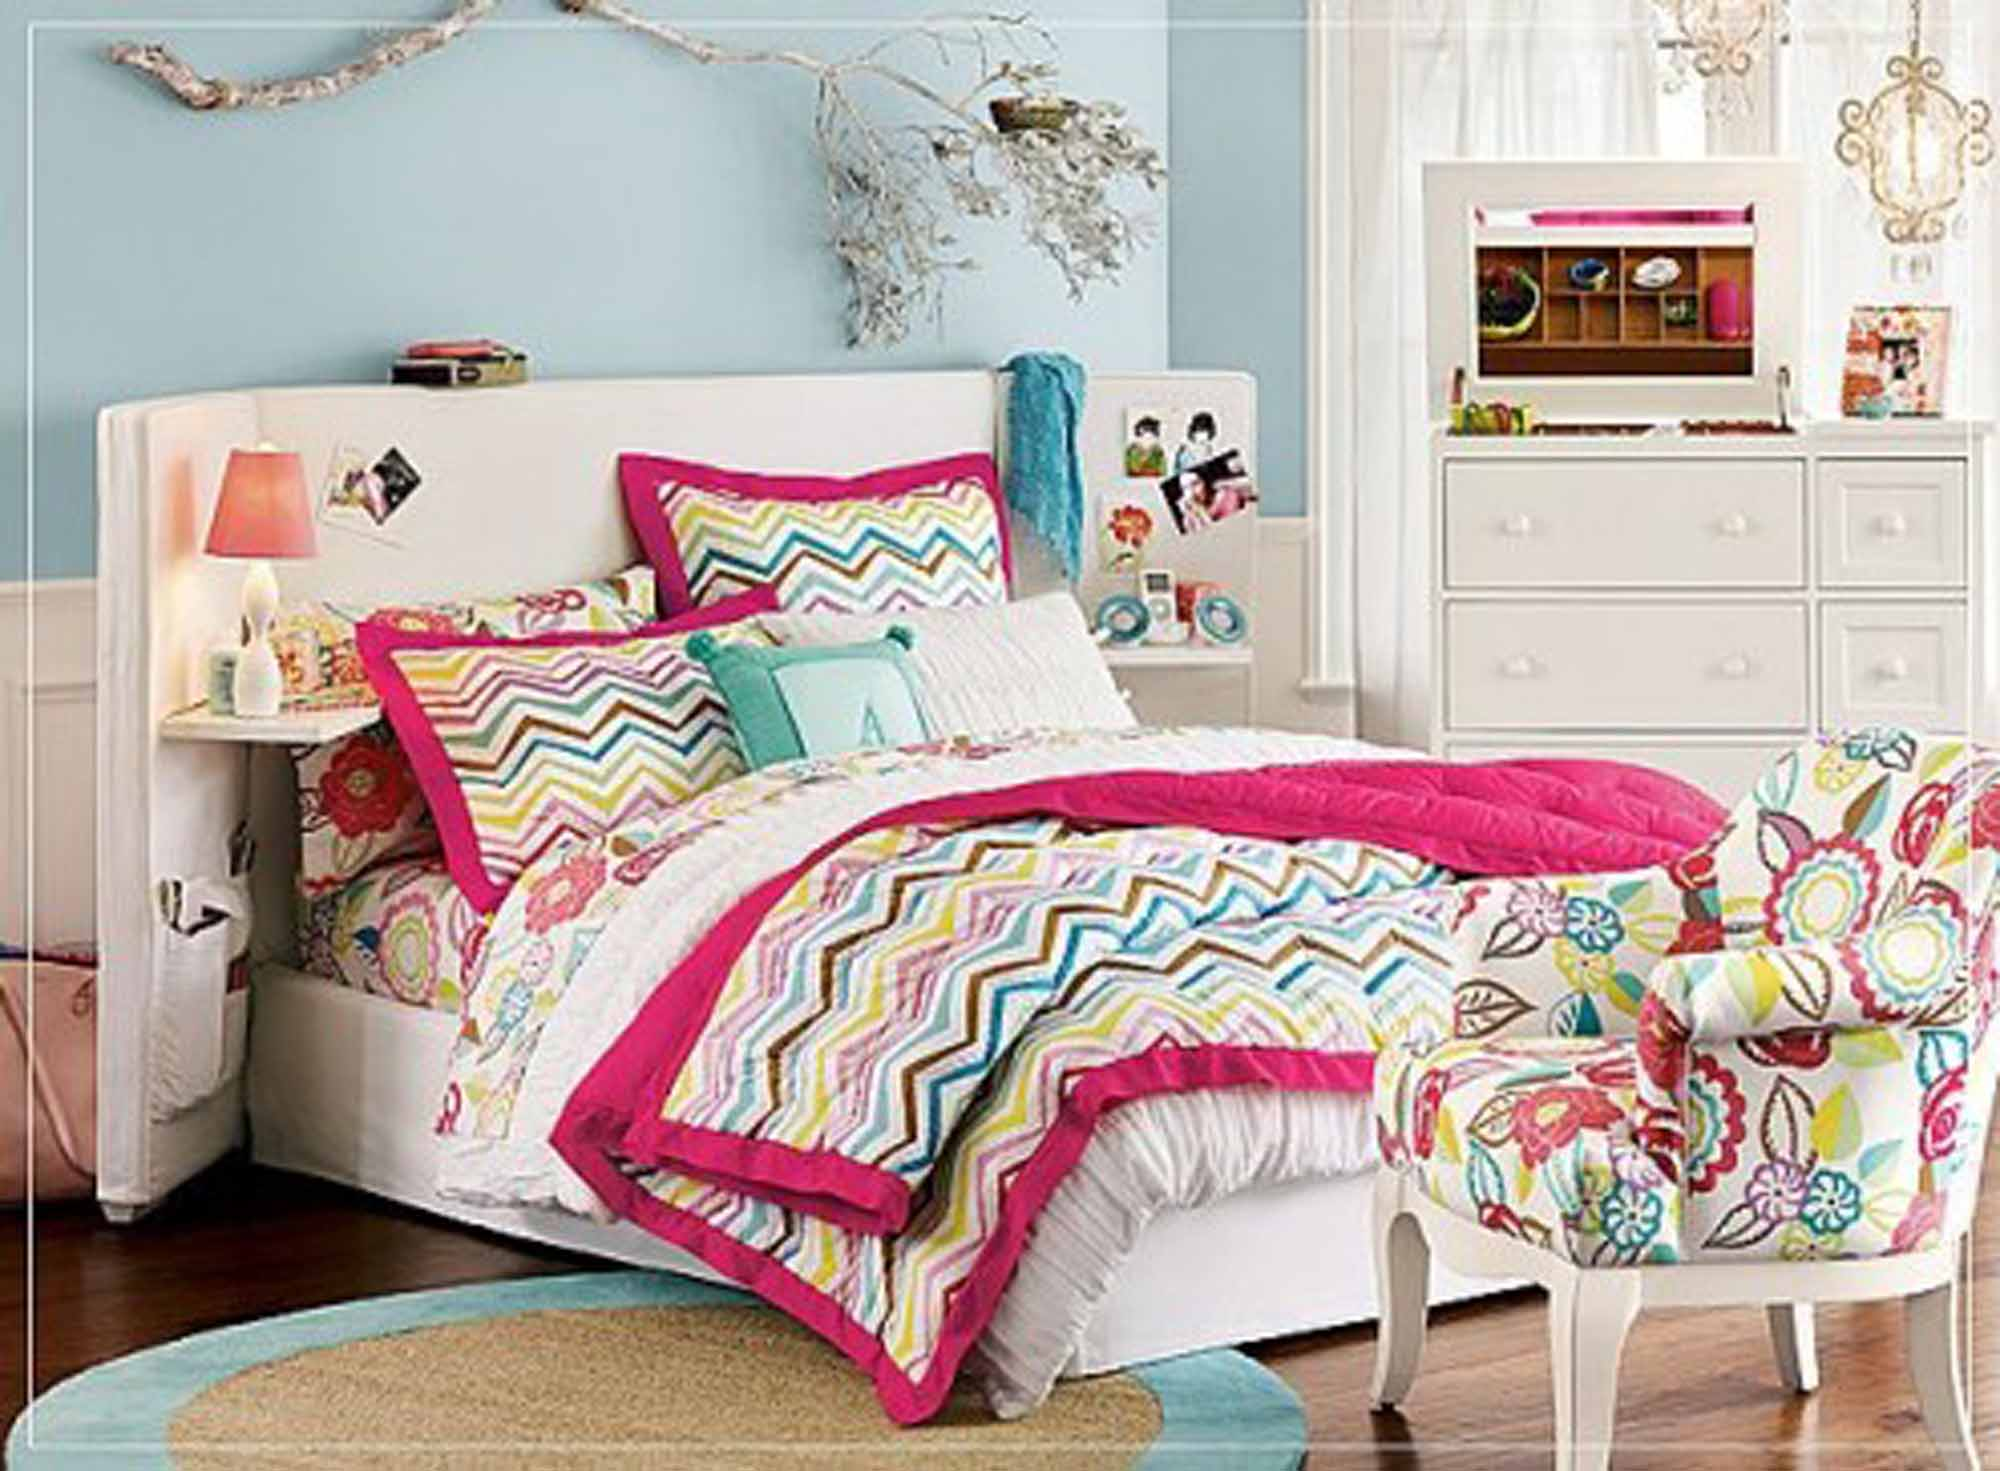 Teenage bedroom ideas for remodeling the bedroom - Cute bedroom ideas for tweens ...